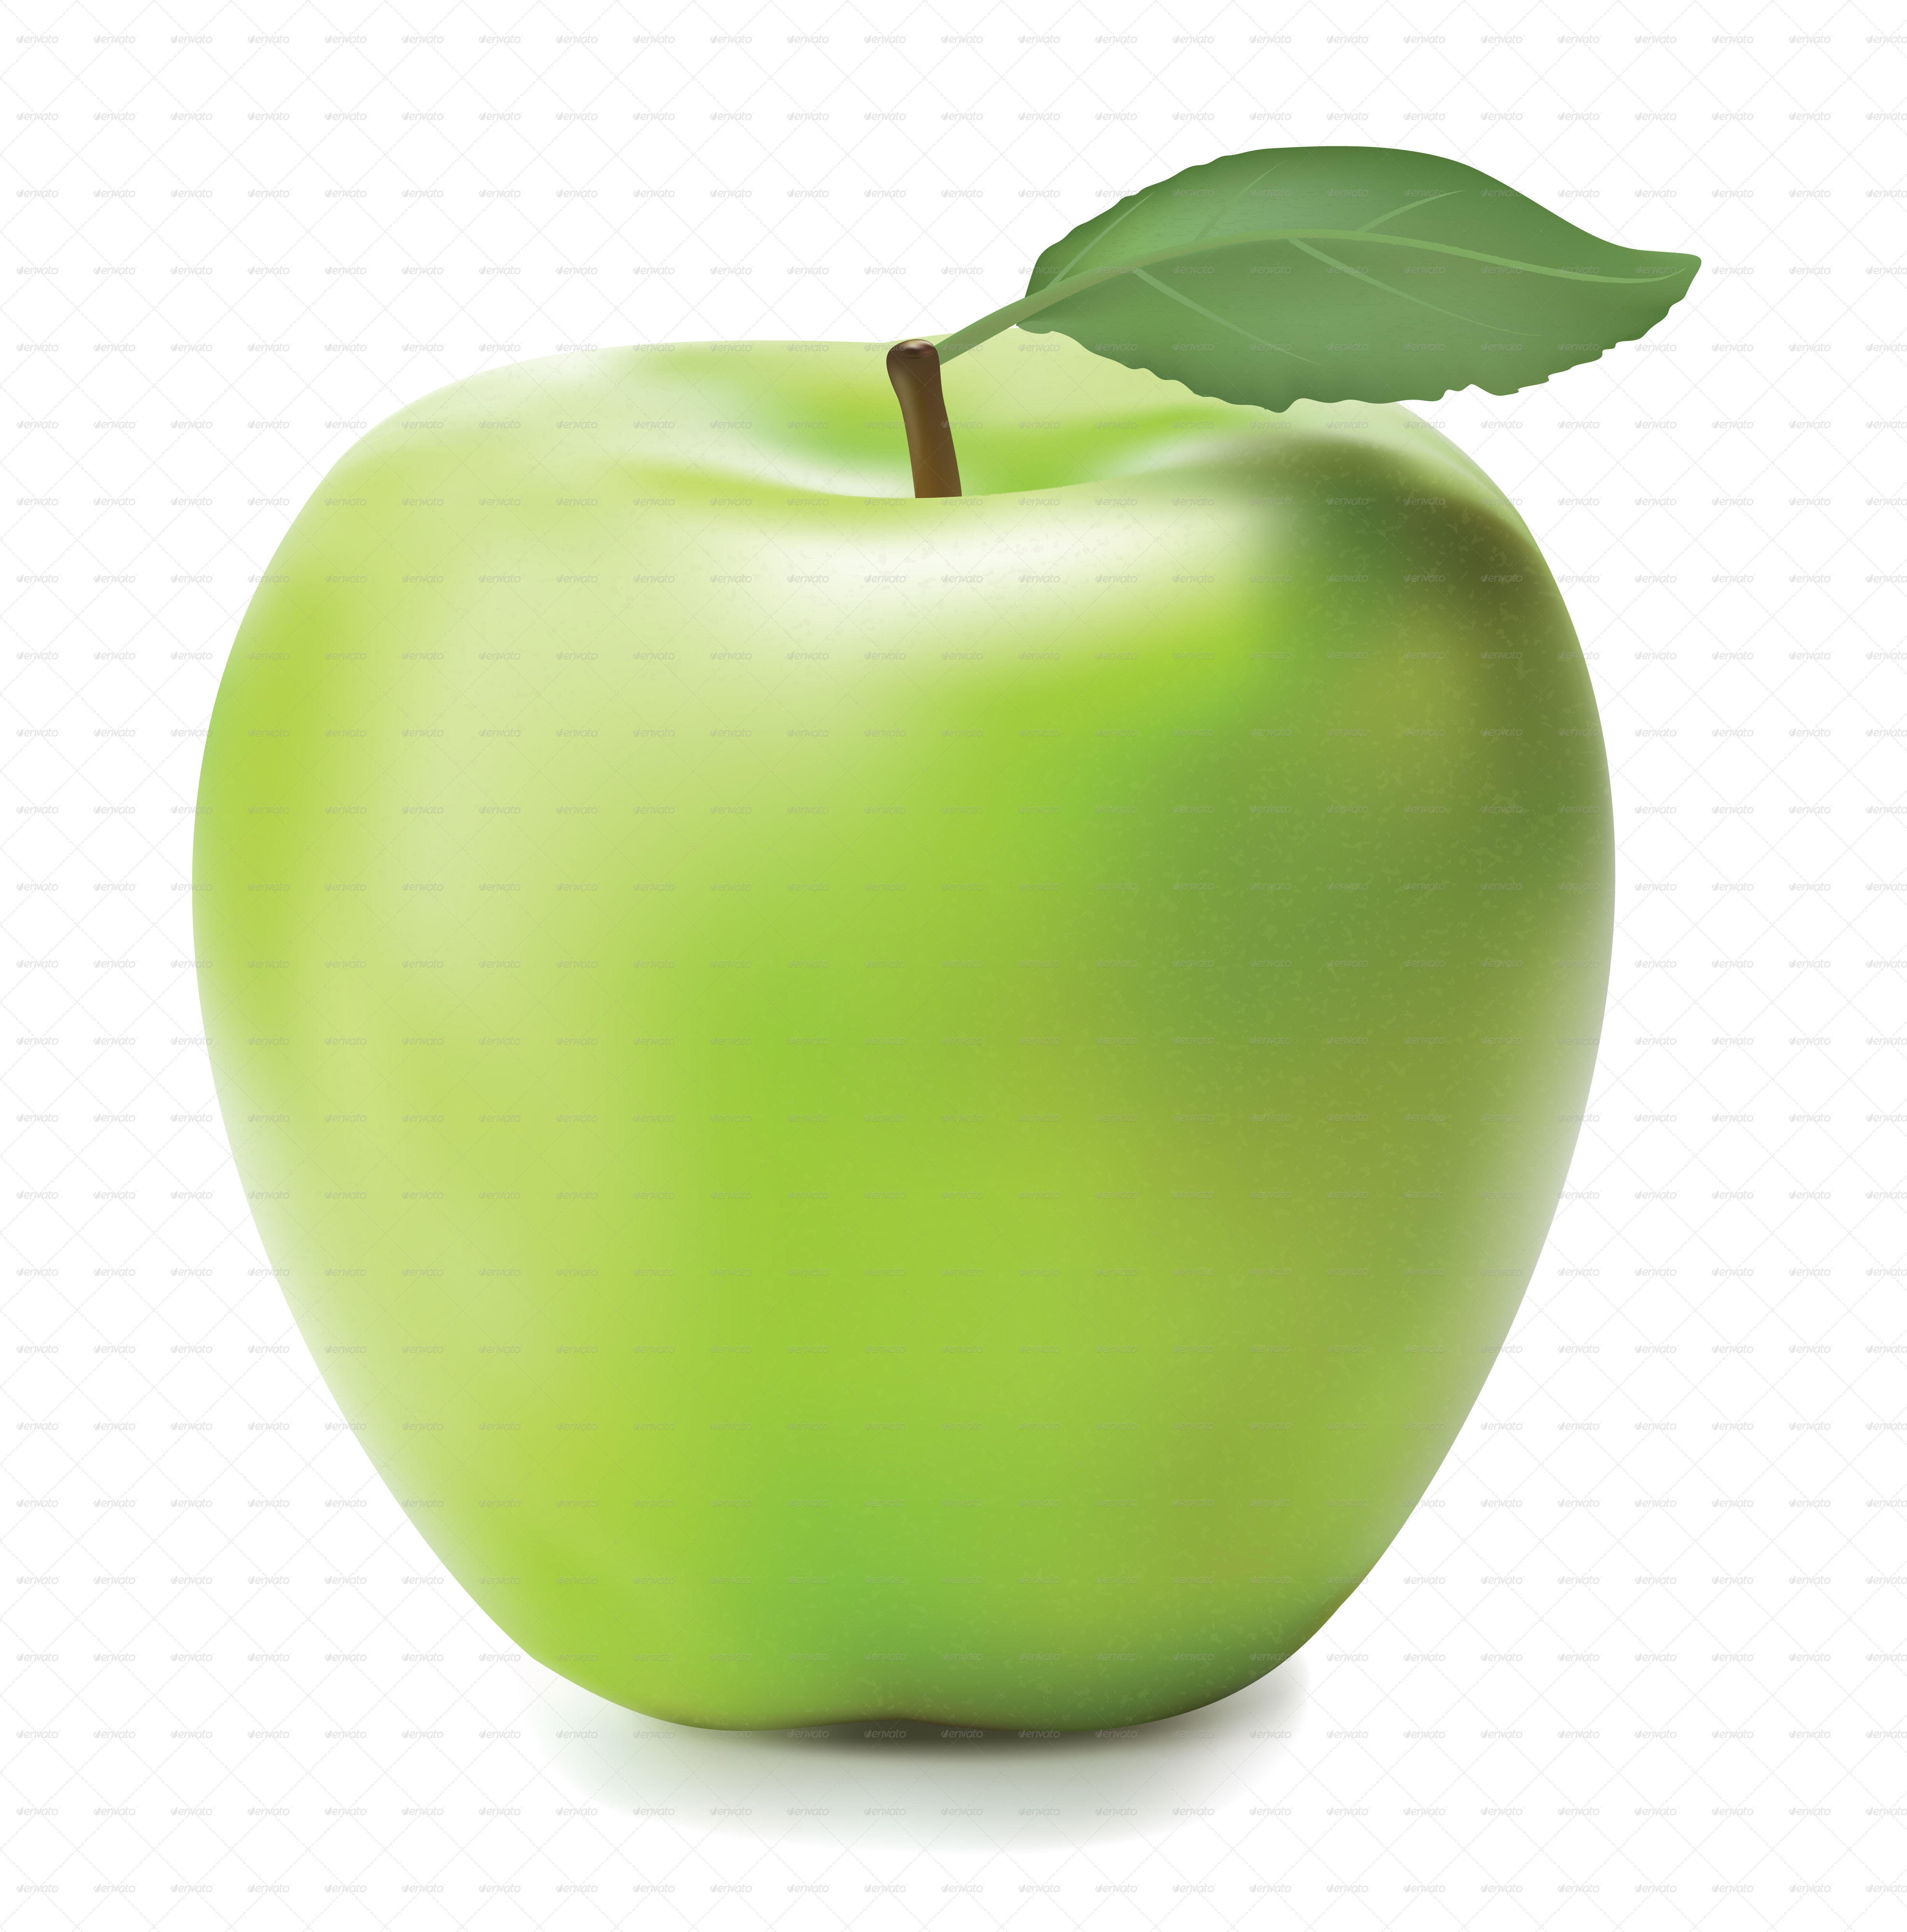 Green Apple by Buriy | GraphicRiver